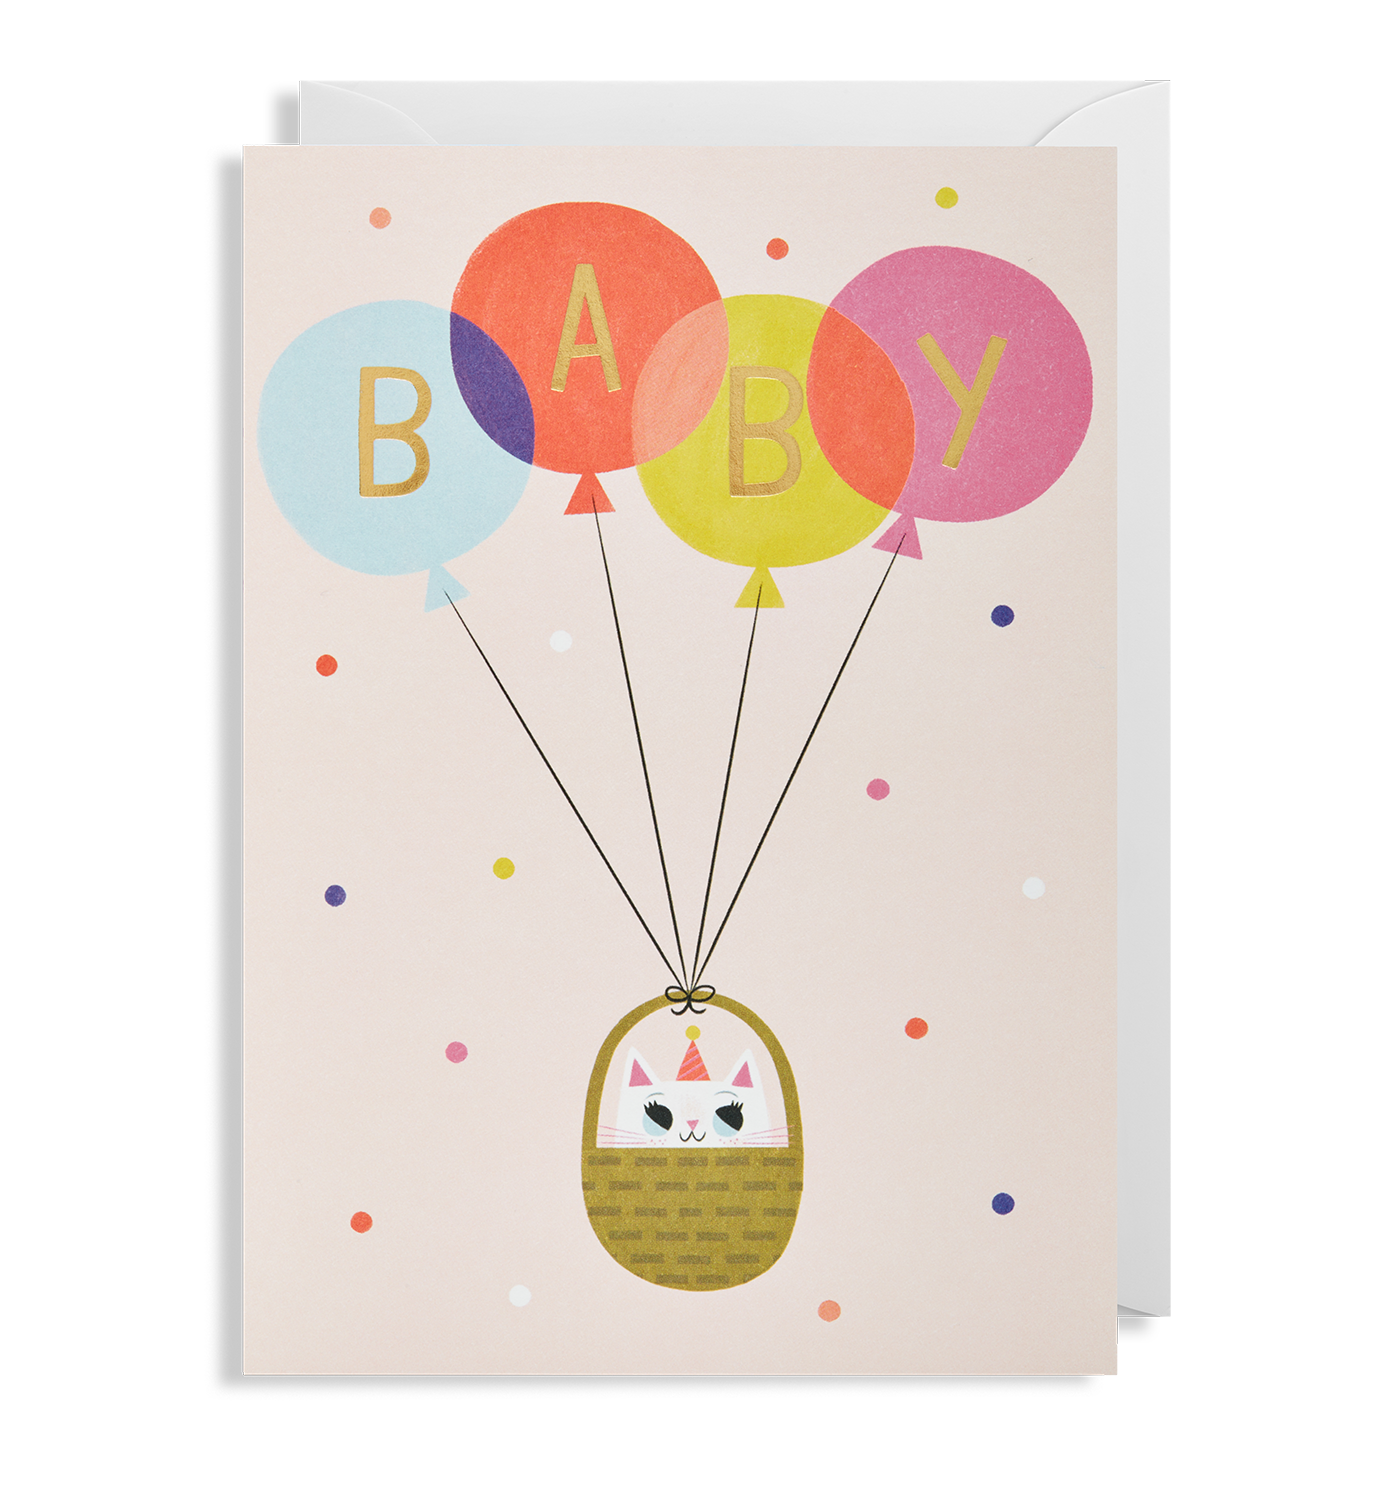 Baby girl greeting card by allison black lagom design baby girl greeting card lagom design kristyandbryce Image collections